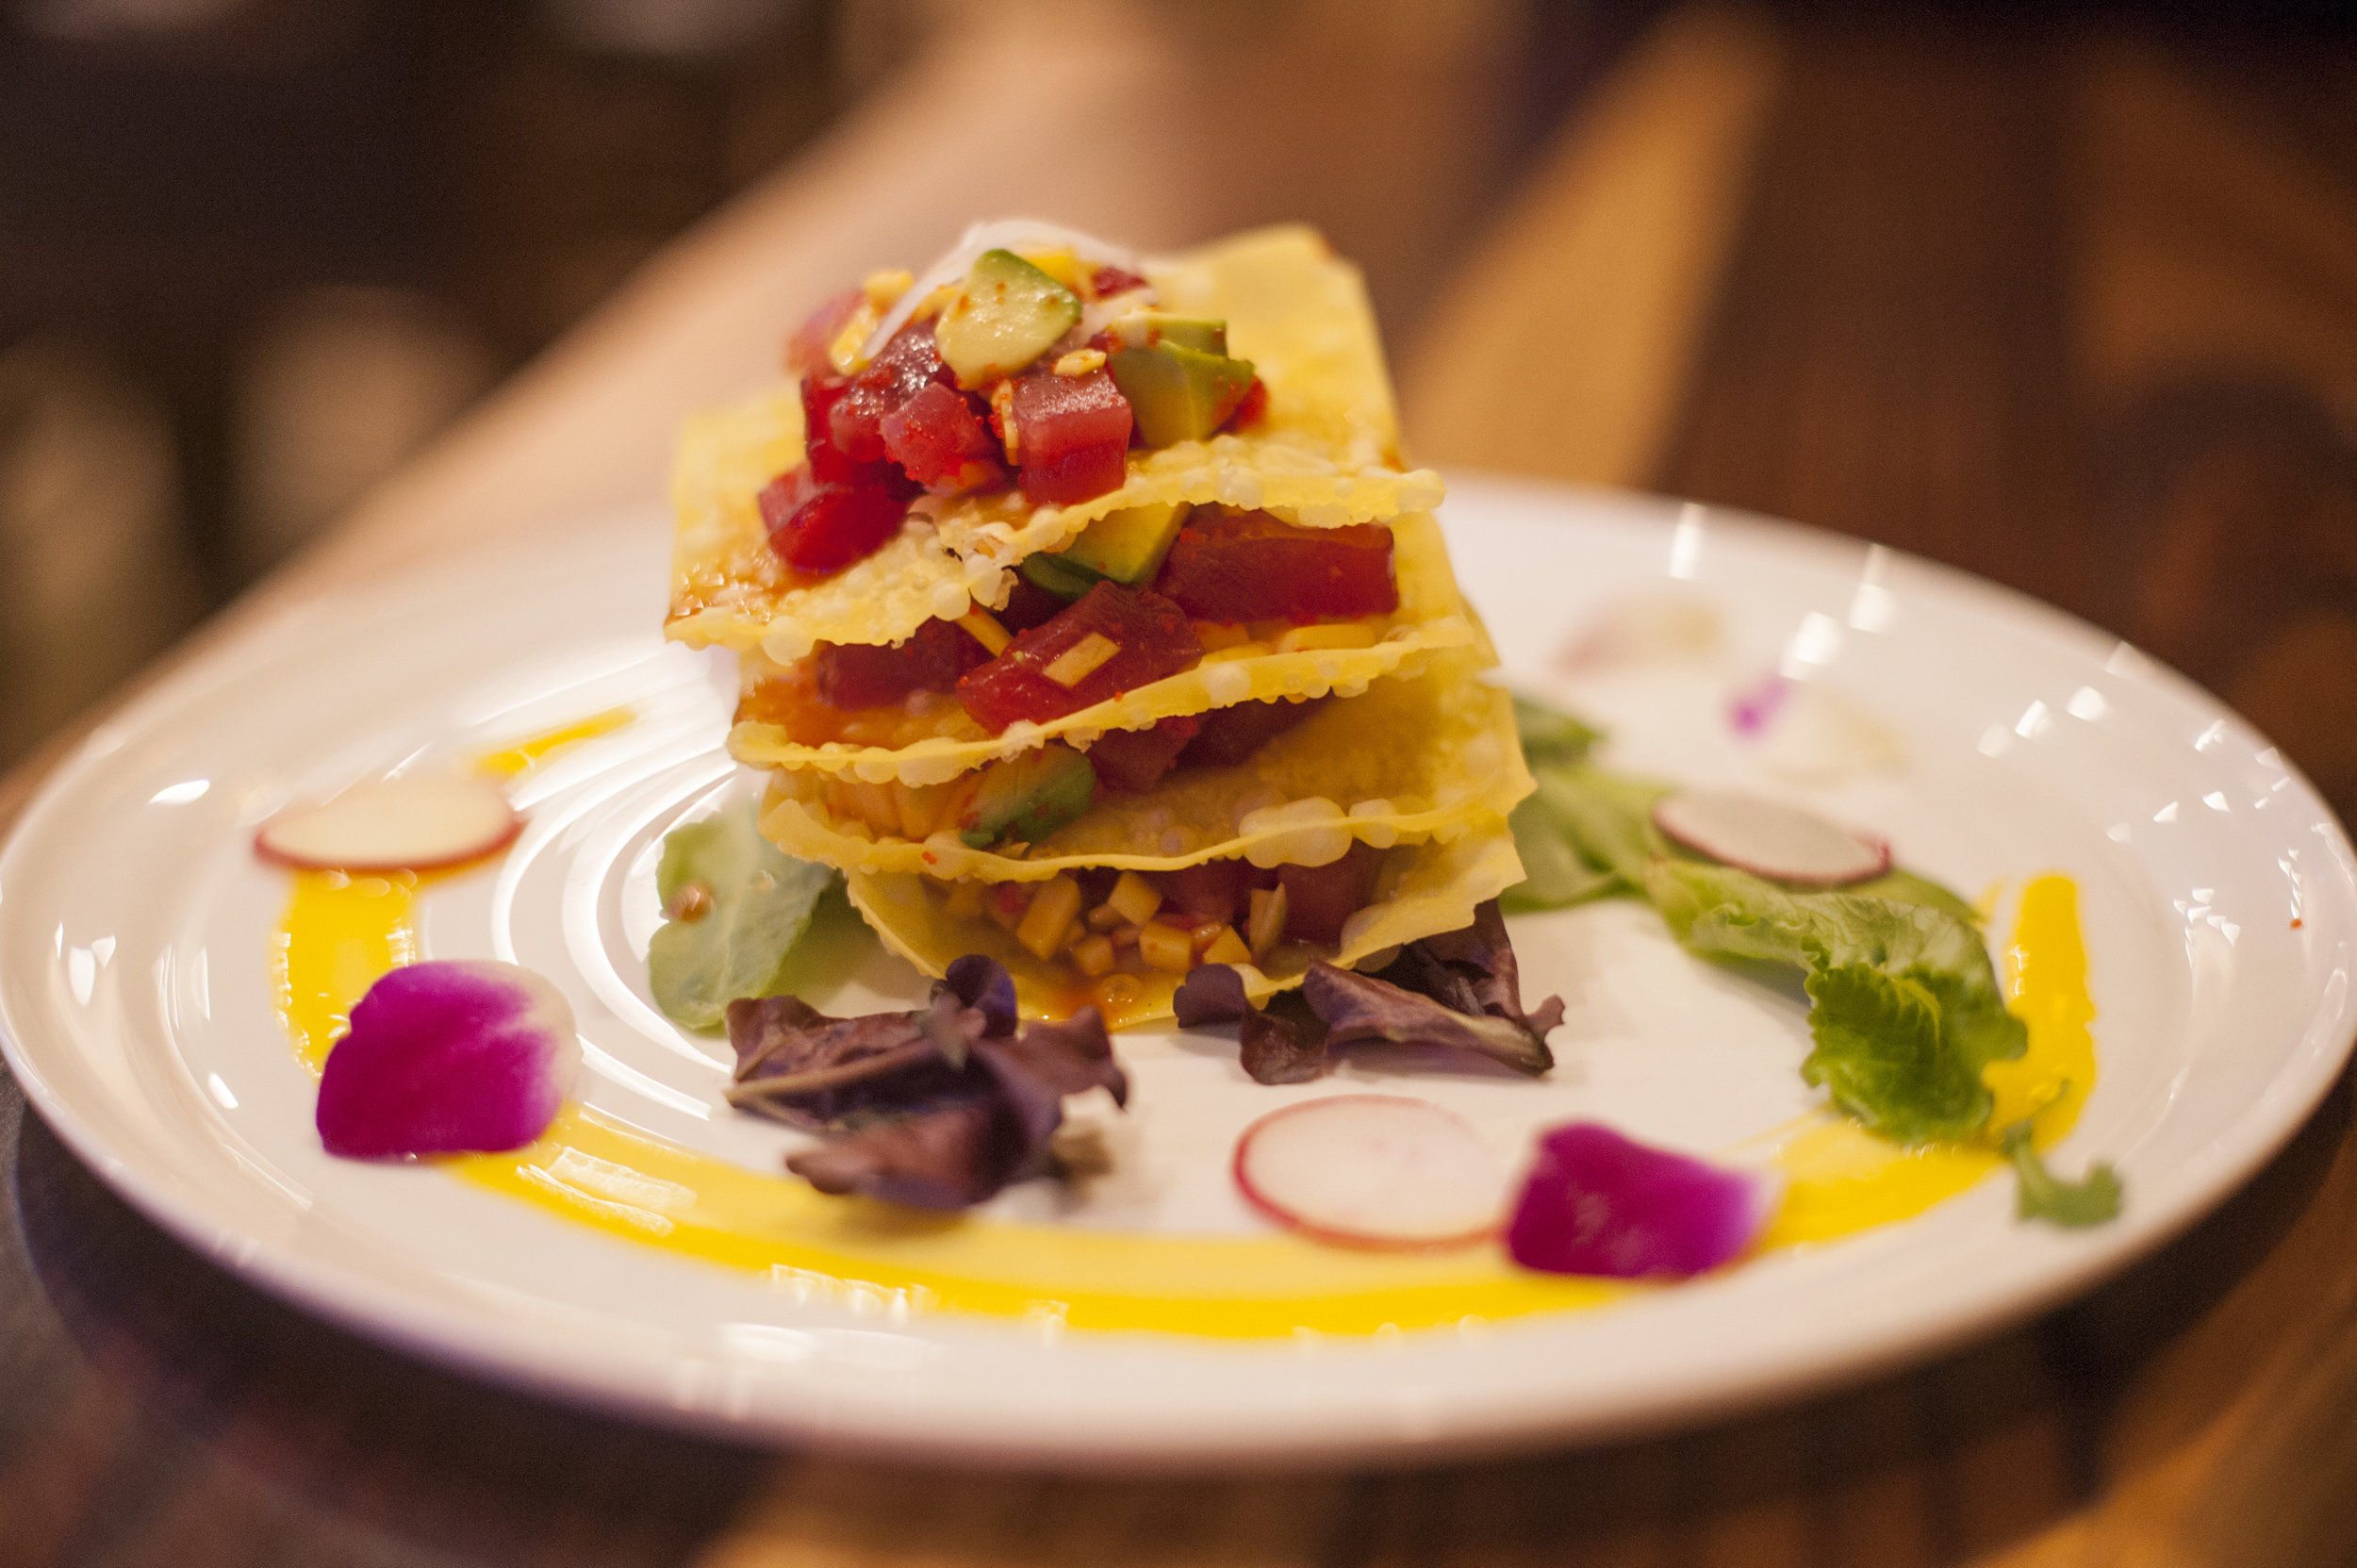 The Tuna Tower at Zaza Japan blends together multitudes of flavor stacked on top of each other.